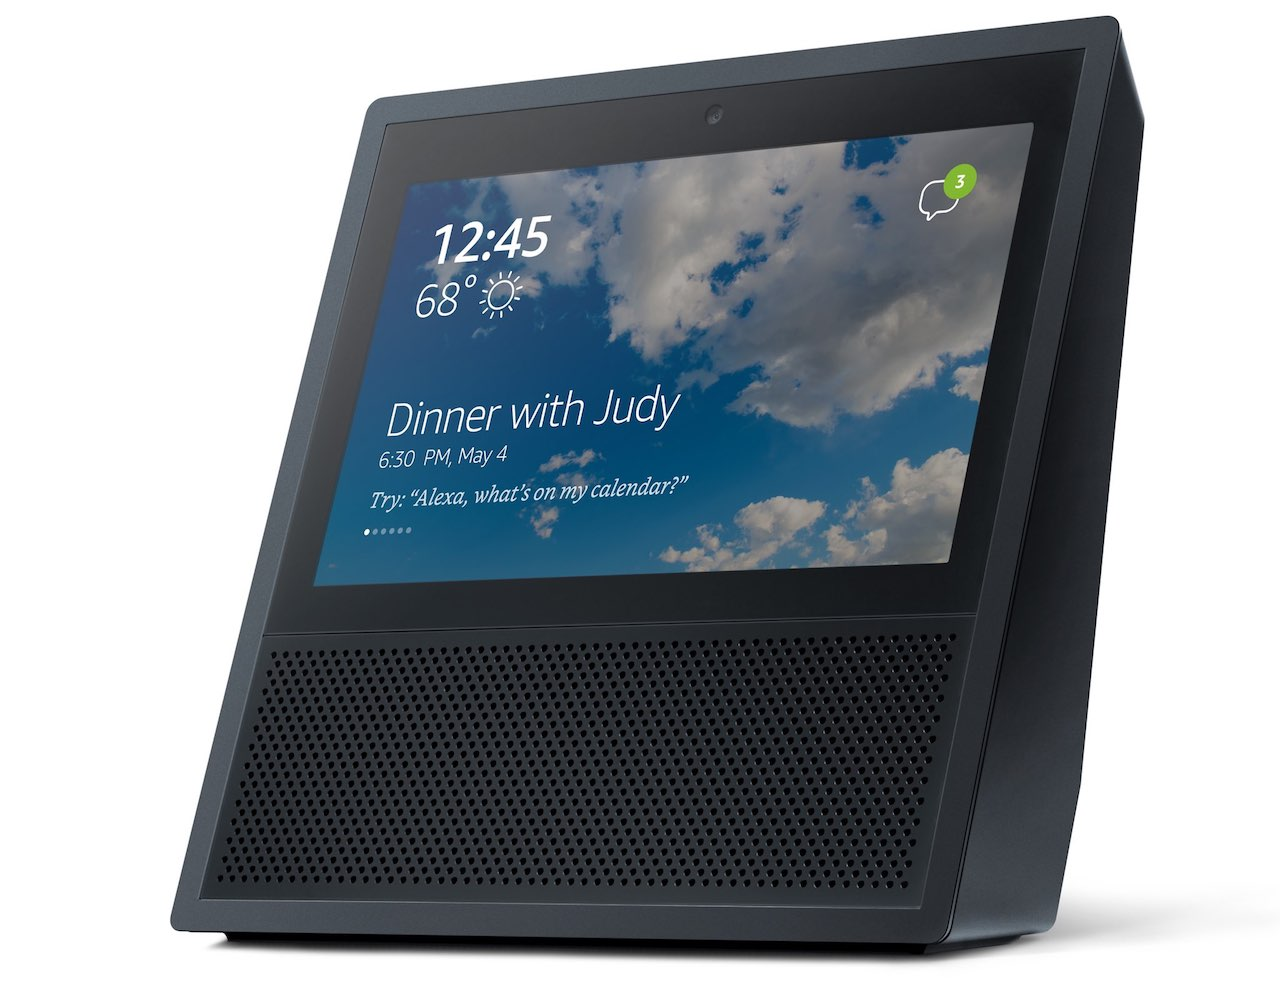 amazon 39 s alexa gets visual with echo show what does it. Black Bedroom Furniture Sets. Home Design Ideas